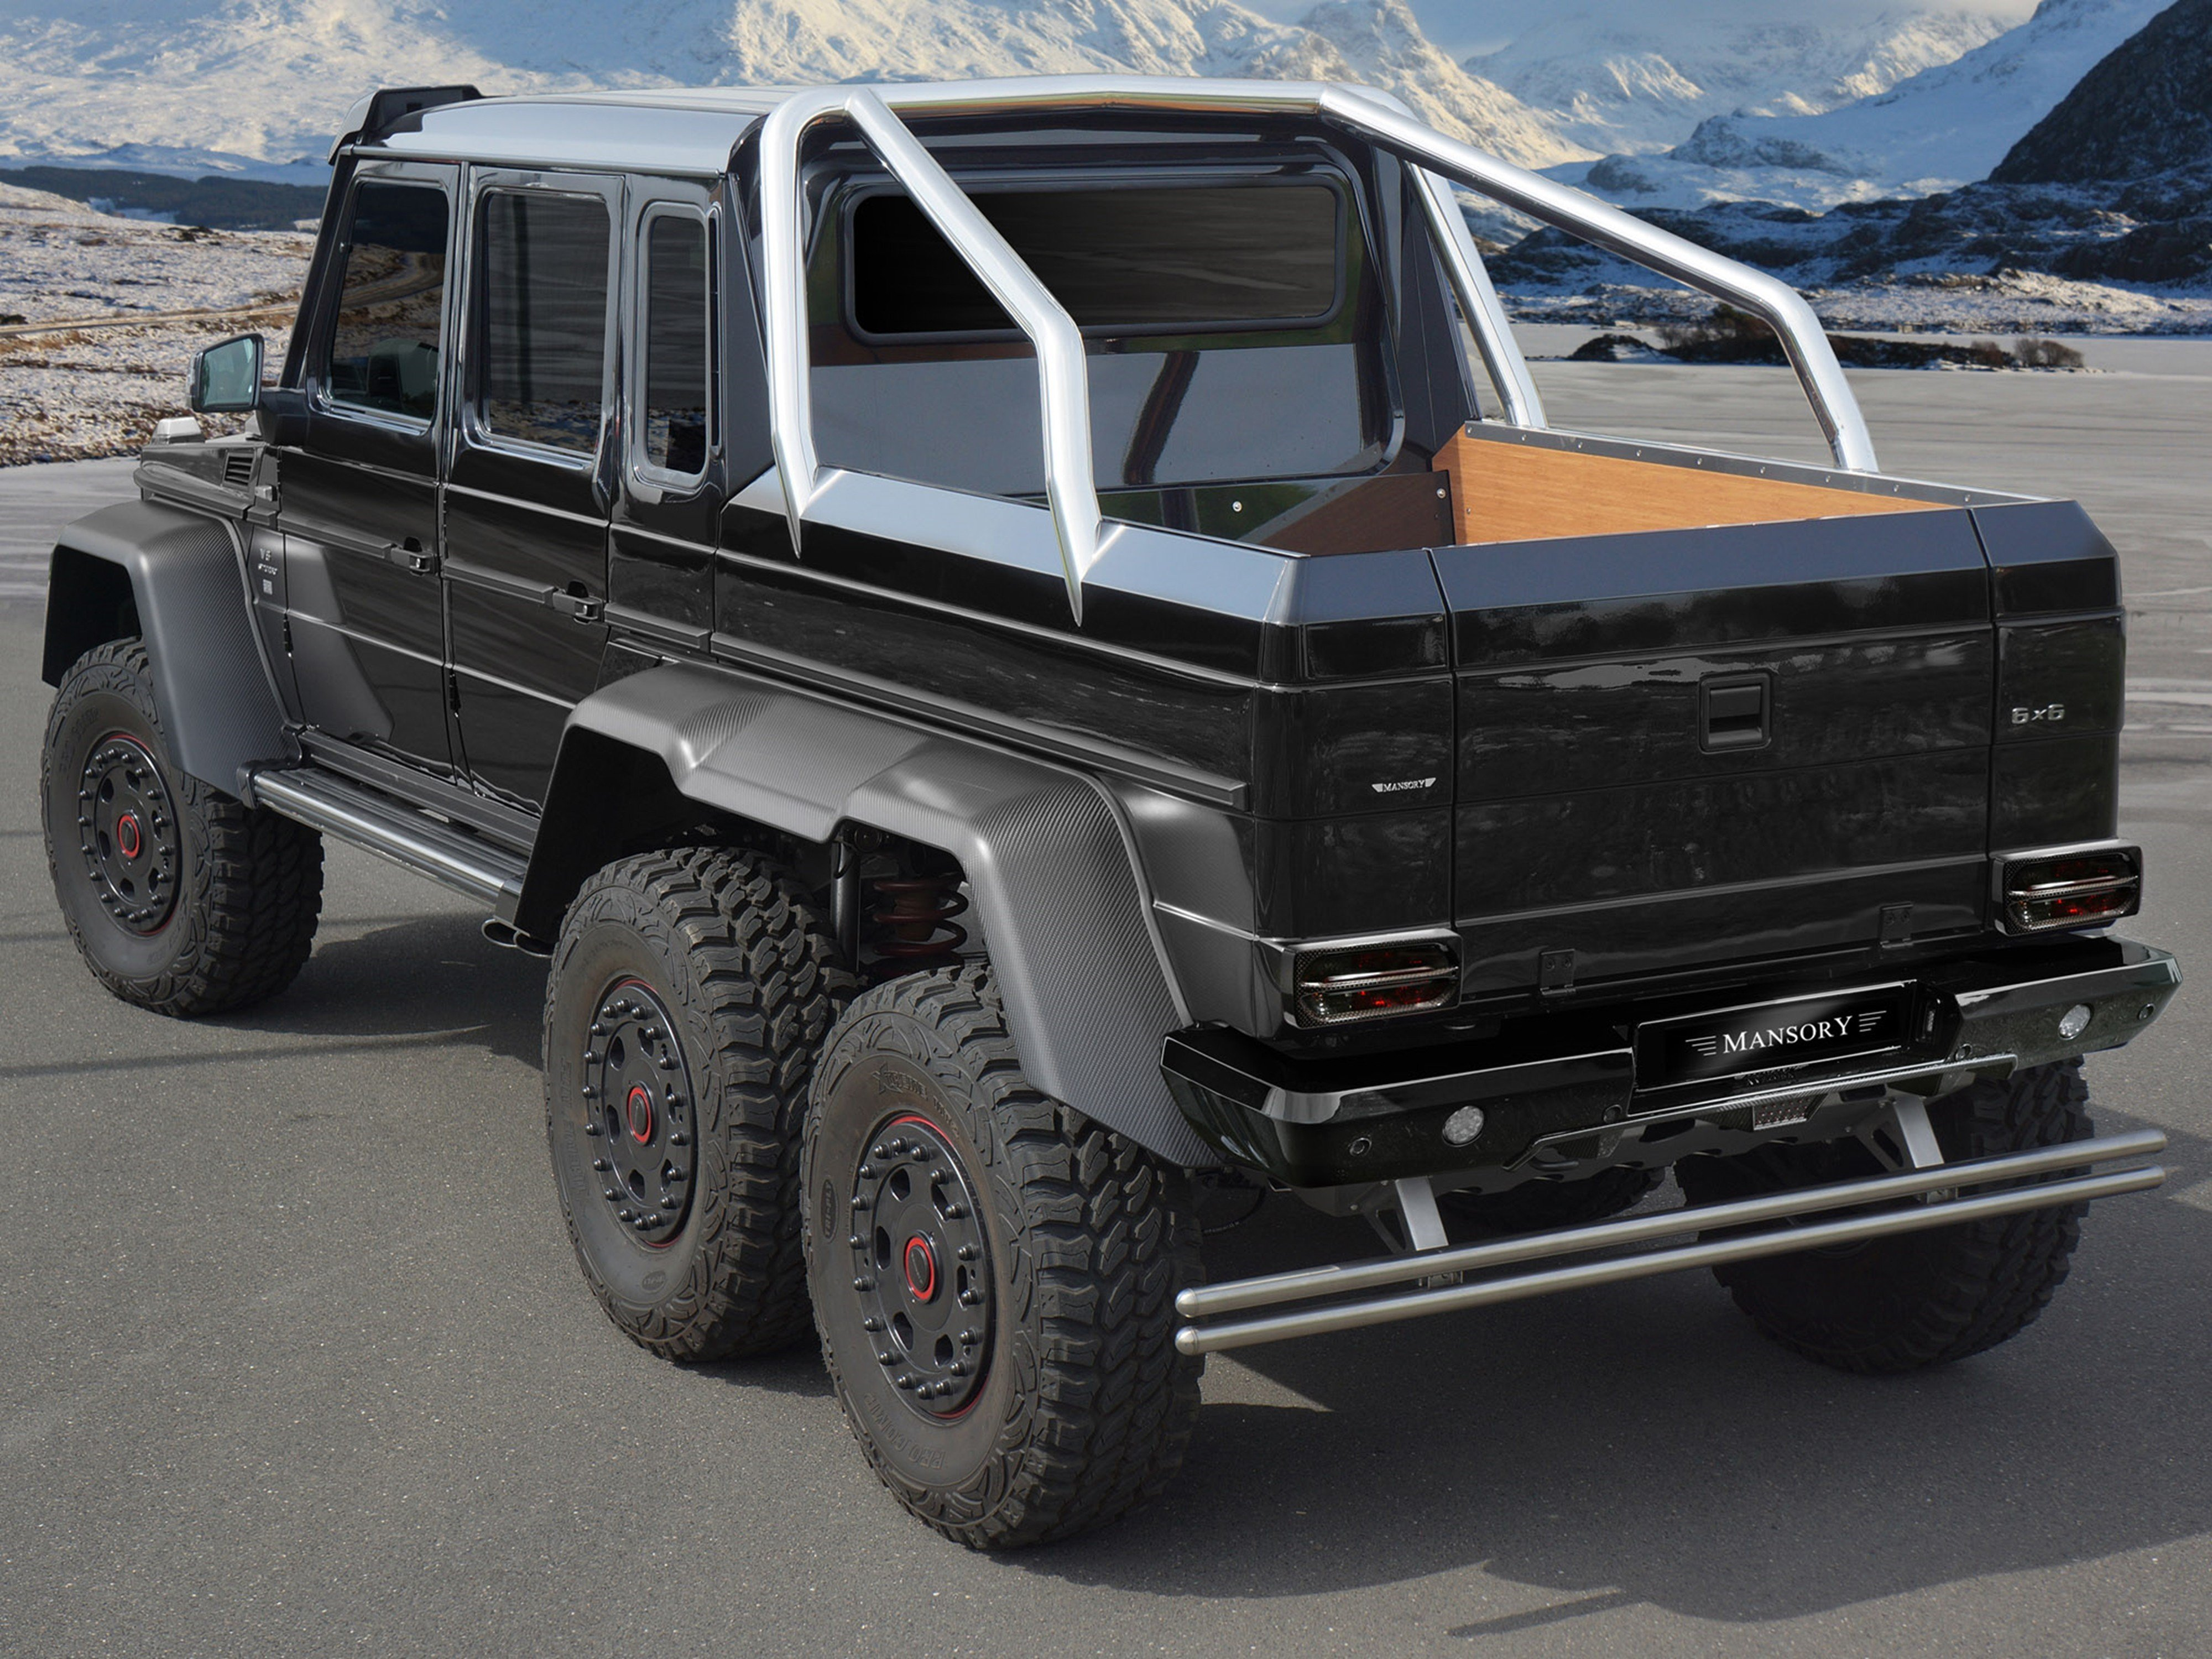 Mansory amg mercedes benz g class tunning off road car for Mercedes benz g class off road